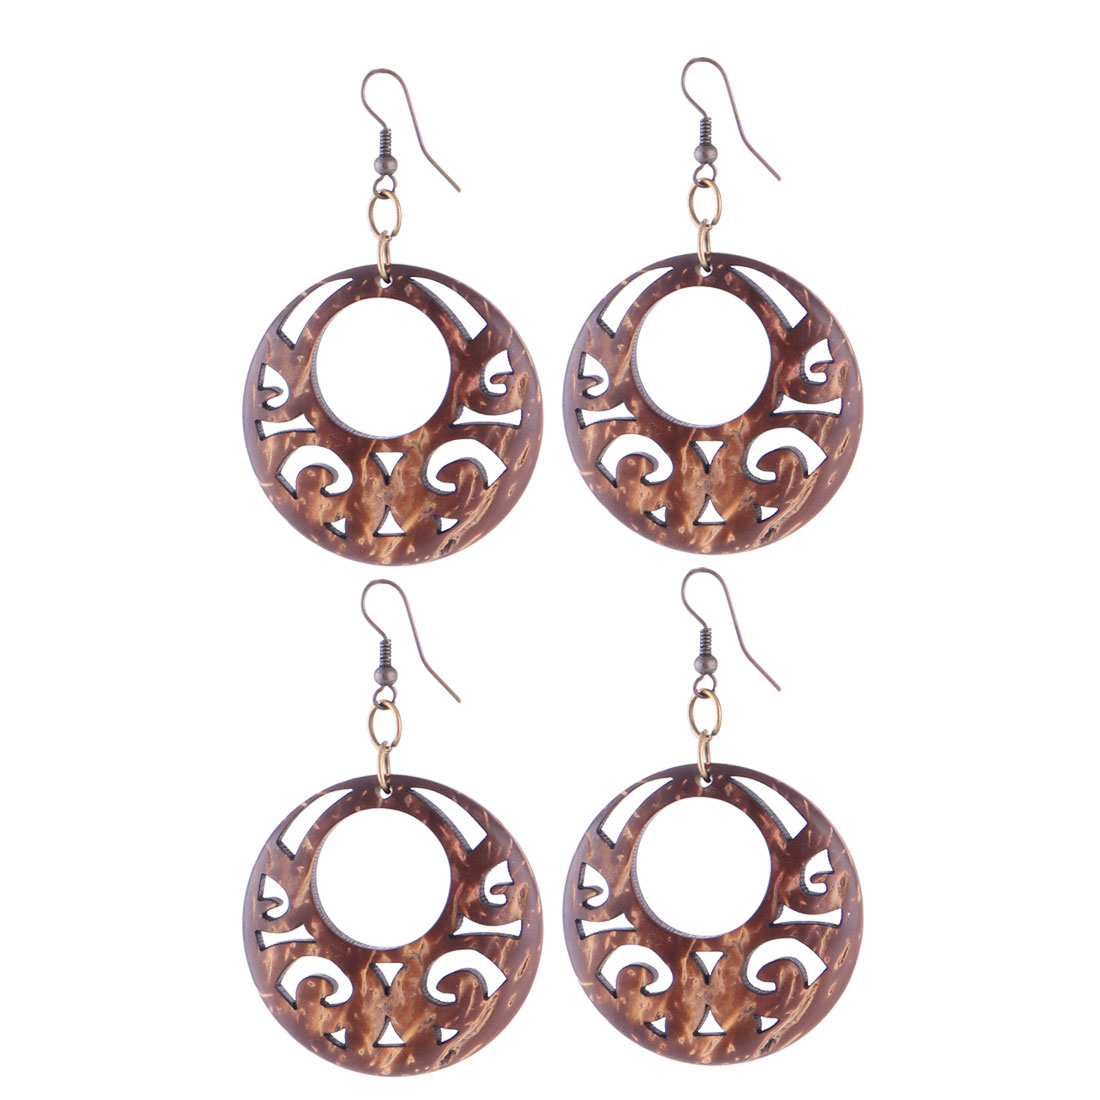 Lady Woman Wooden Oval Shape Carving Earbob Earrings Pierced Brown 2 Pairs